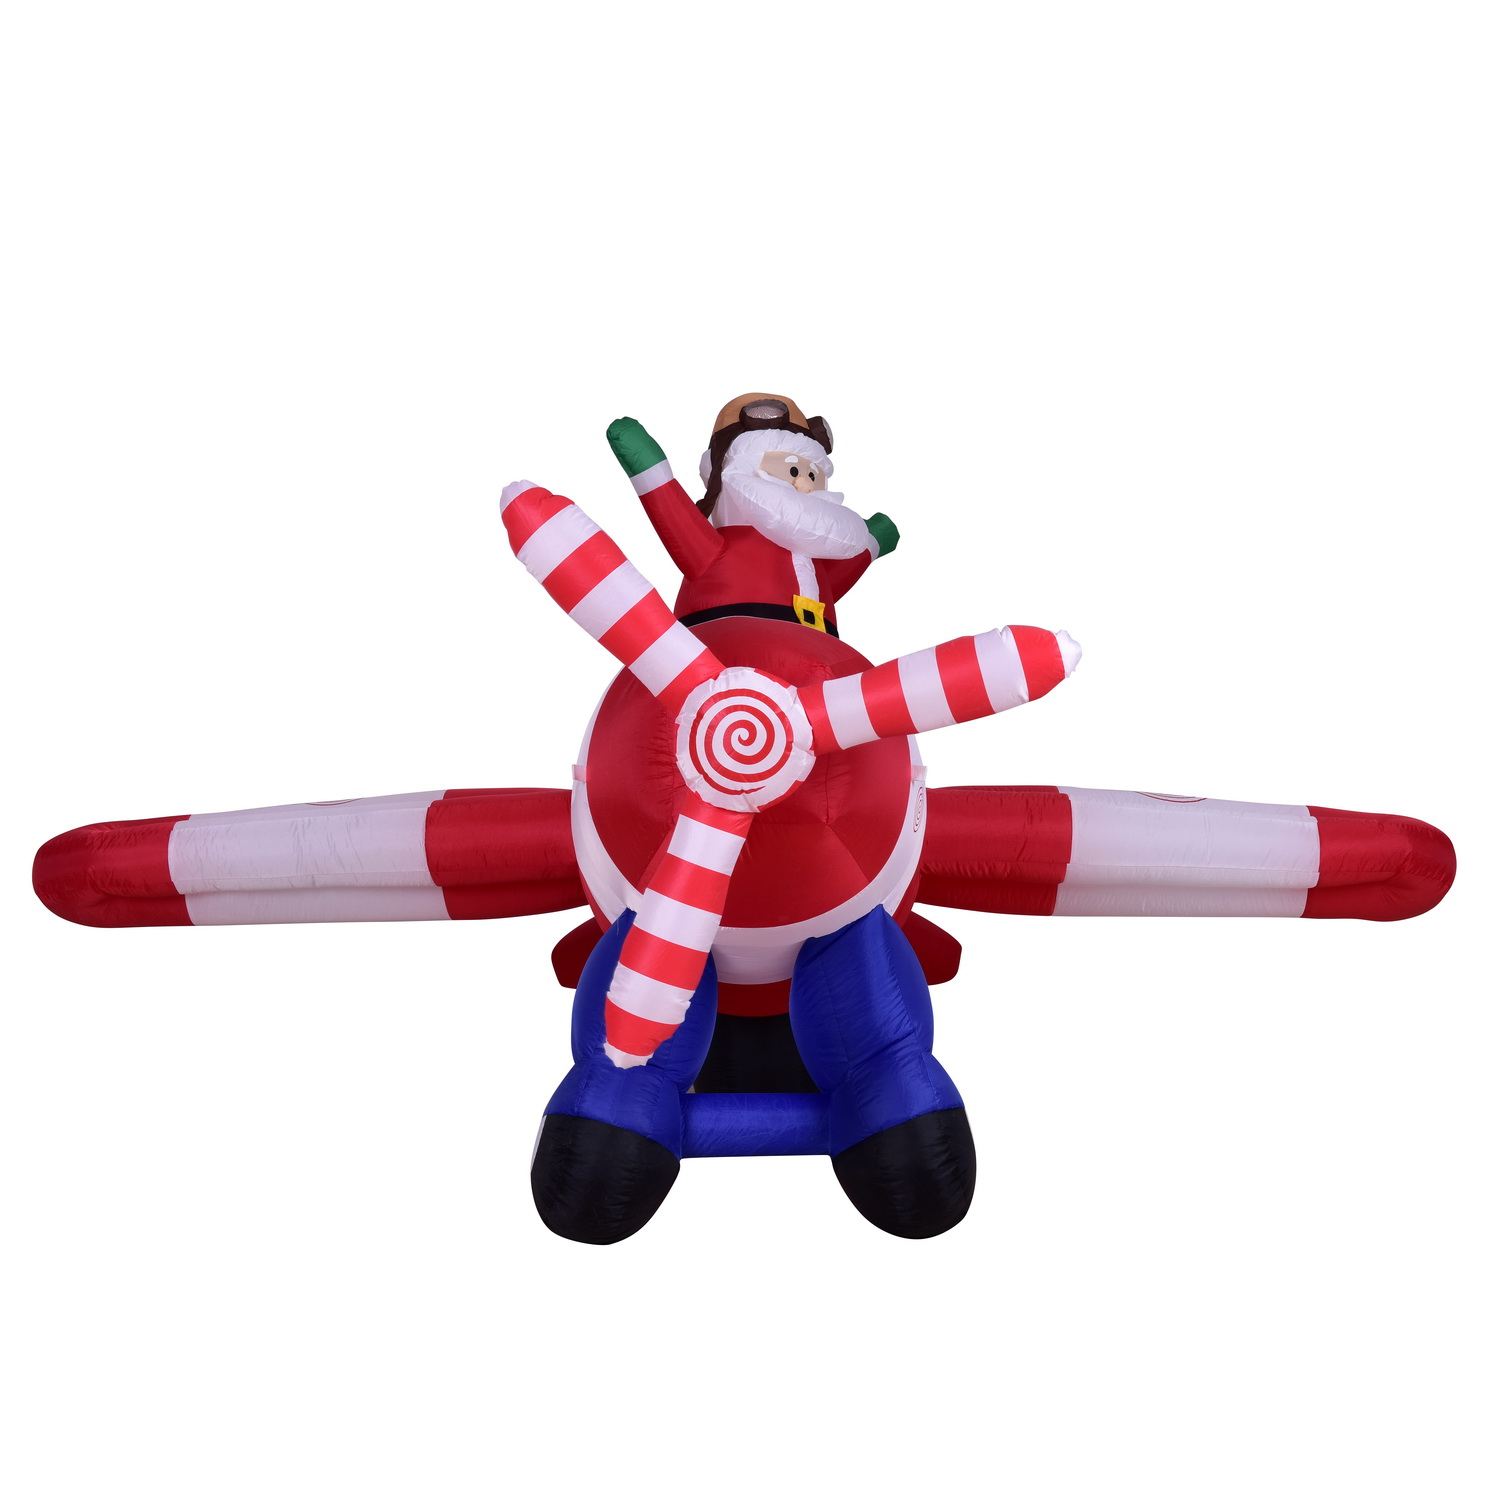 Online Buy Wholesale Airplane Christmas Ornament From China Airplane Christmas Ornament